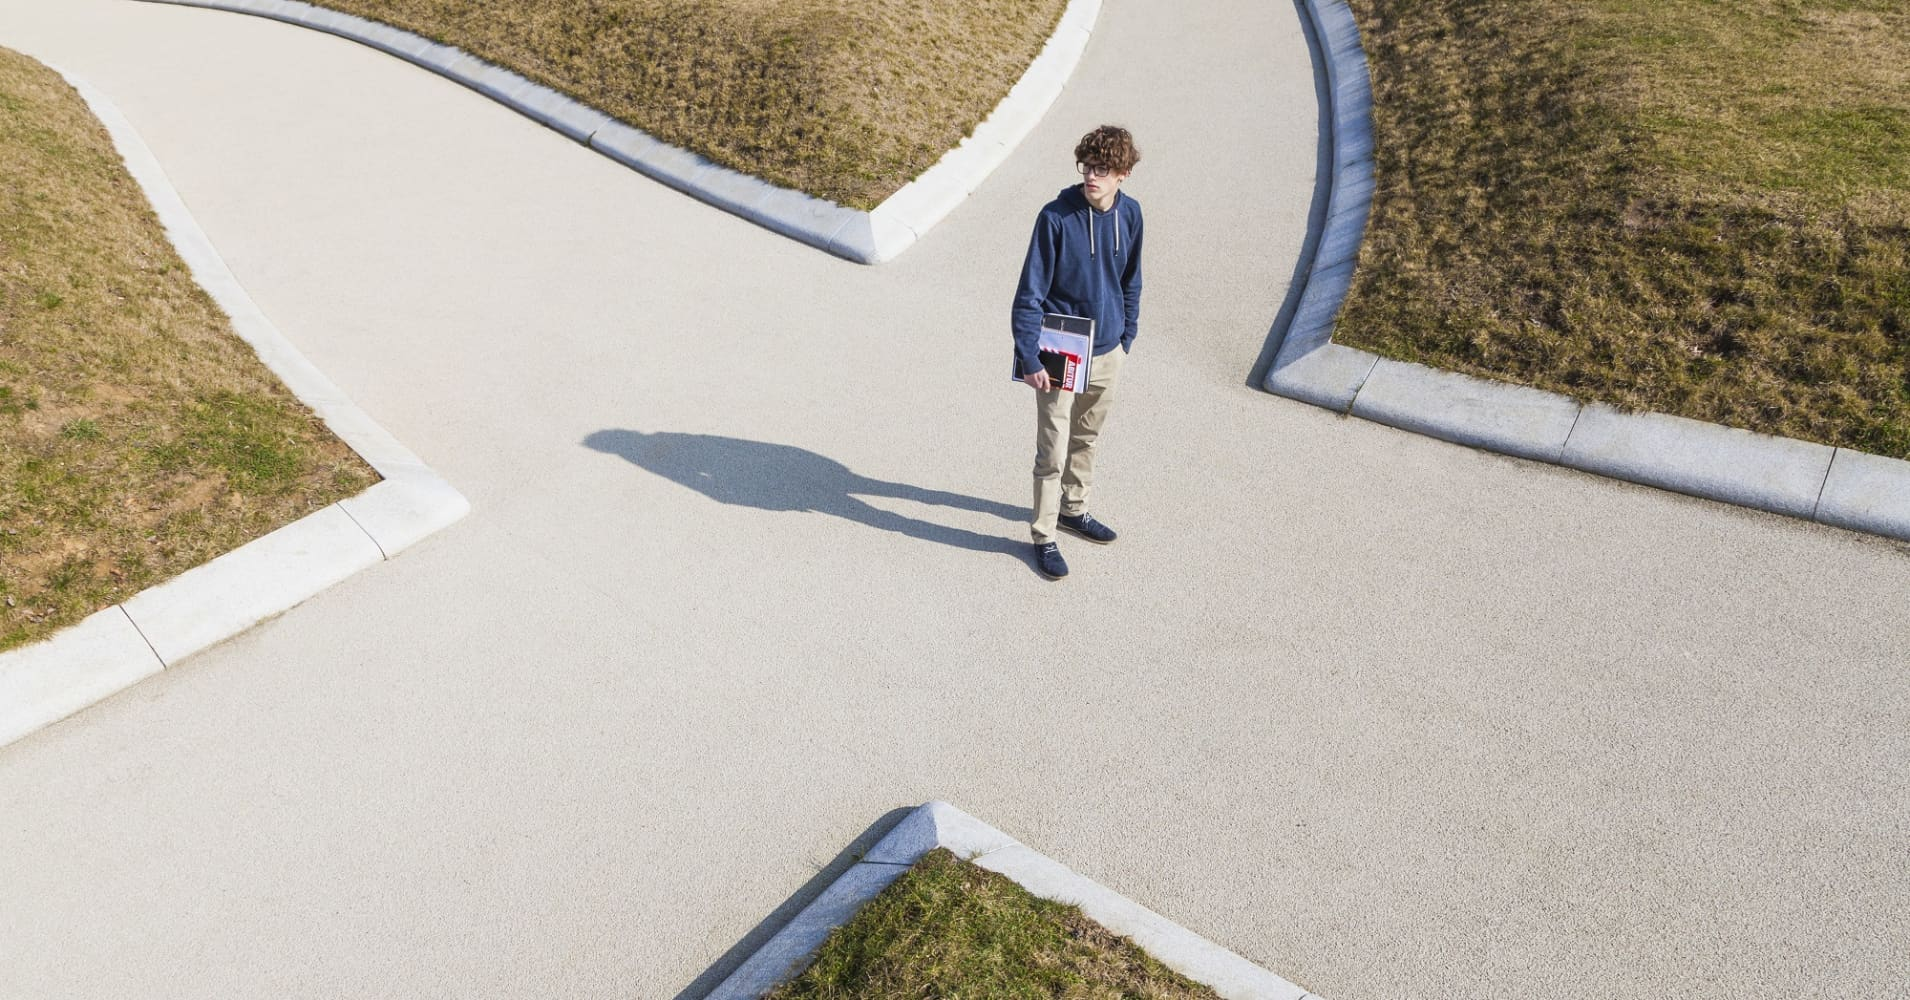 3 Ways To Be Sure You Pick The Right Career